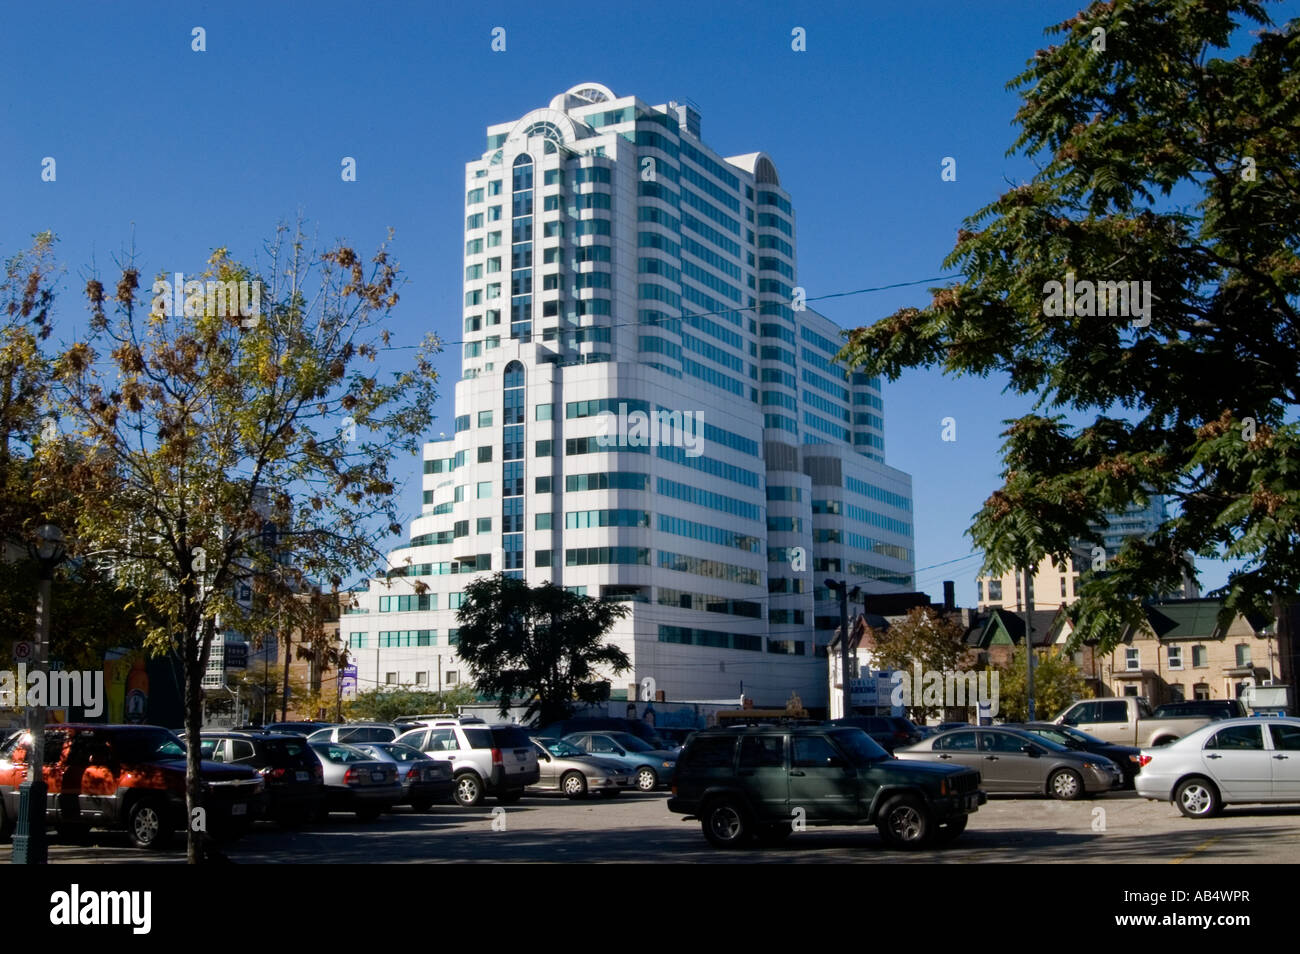 tower block building in toronto canada - Stock Image